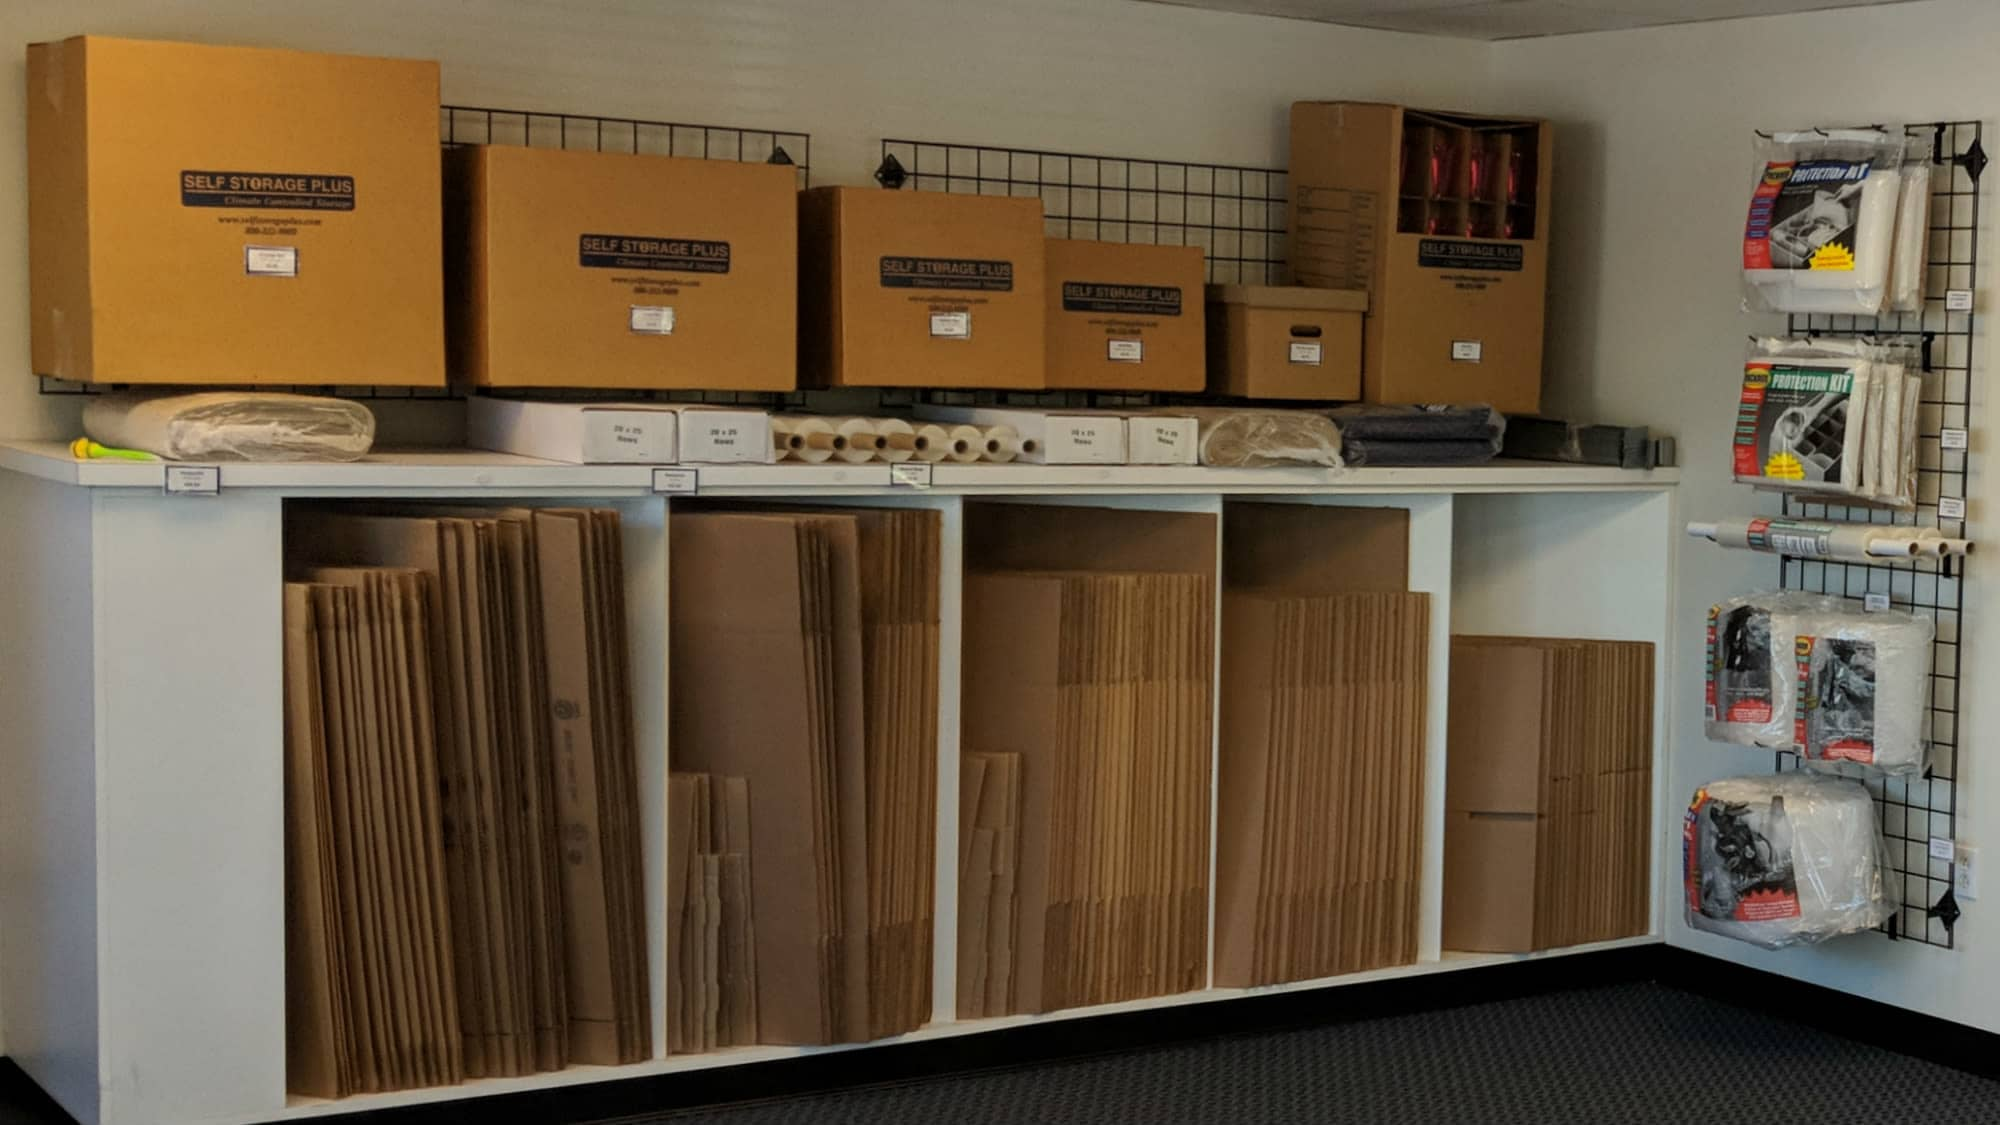 Boxes and supplies sold at Self Storage Plus in Arlington, VA